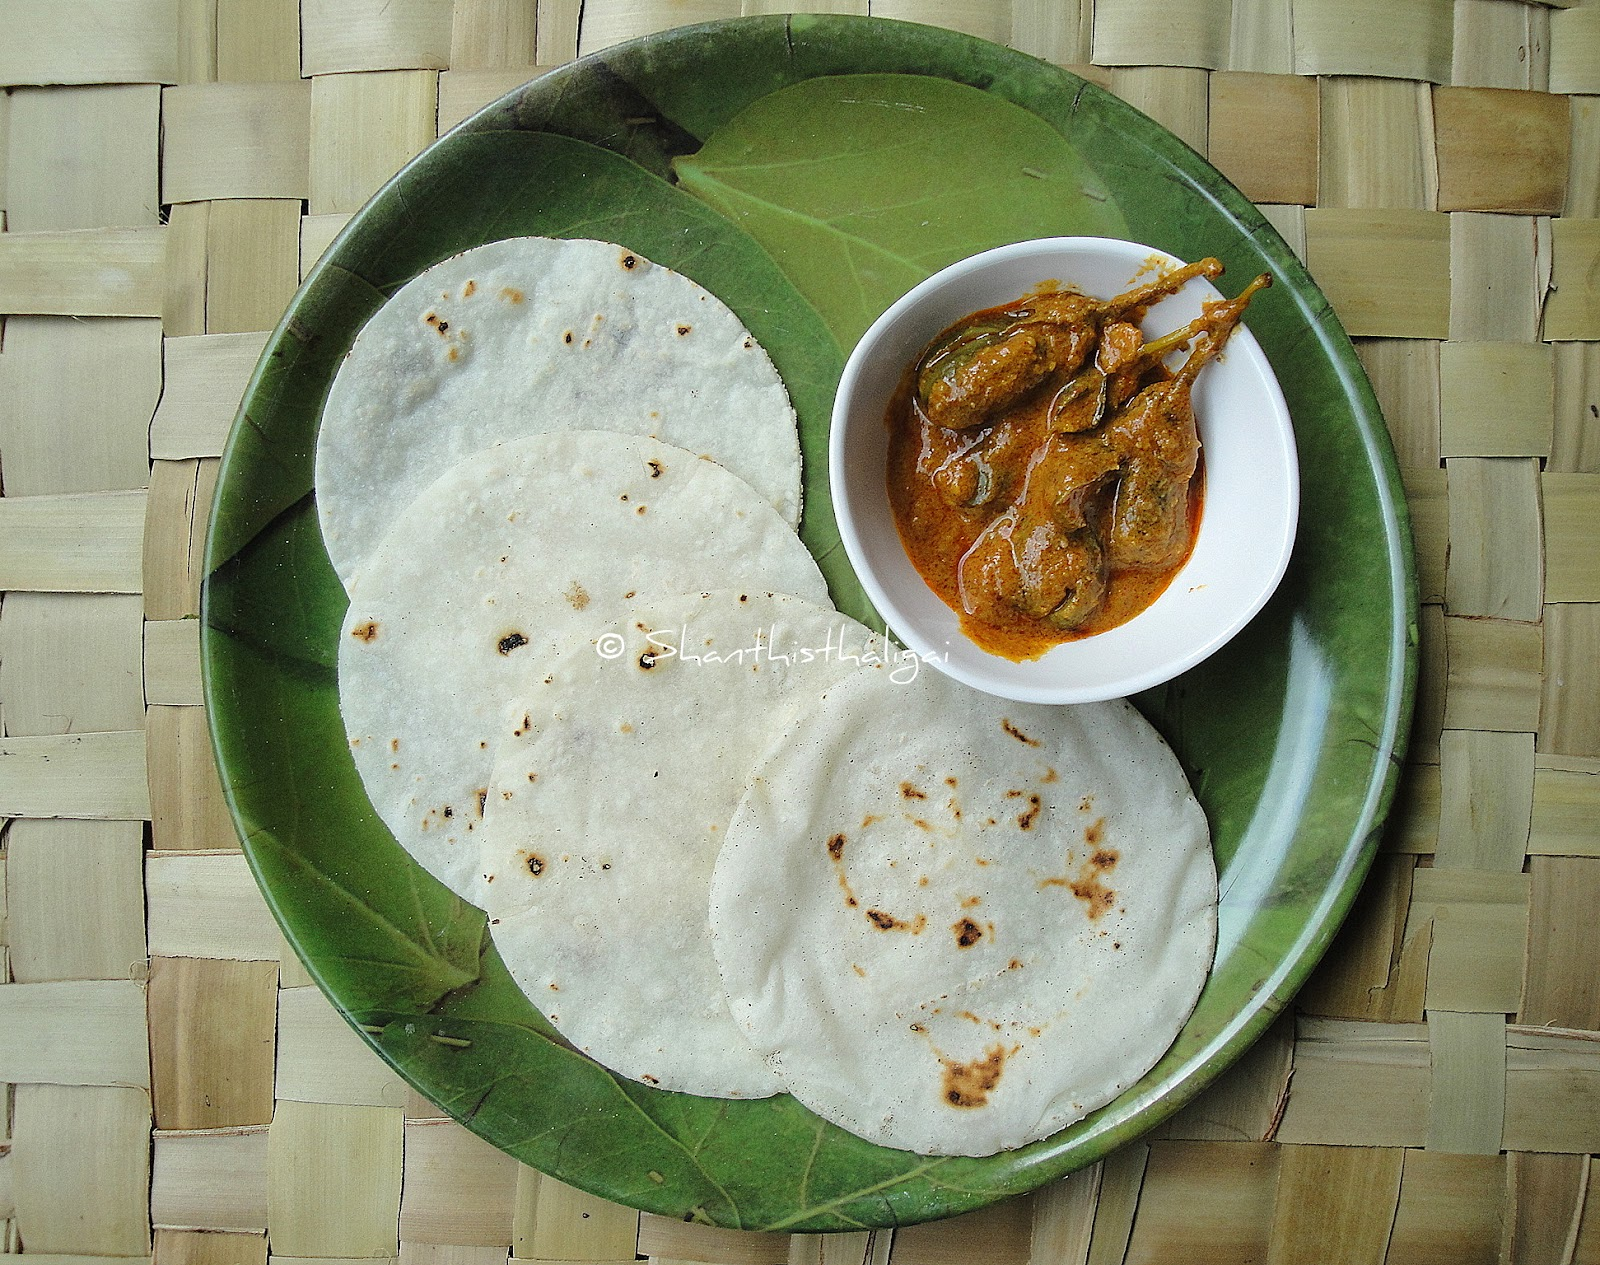 HOW TO MAKE AKKI ROTI MALNAD STYLE,HOW TO MAKE MALNAD AKKI ROTI, HOW TO MAKE SOFT RICE ROTI ,HOW TO MAKE TANDLACHI BHAKRI , HOW TO MAKE ARI PATHIRI